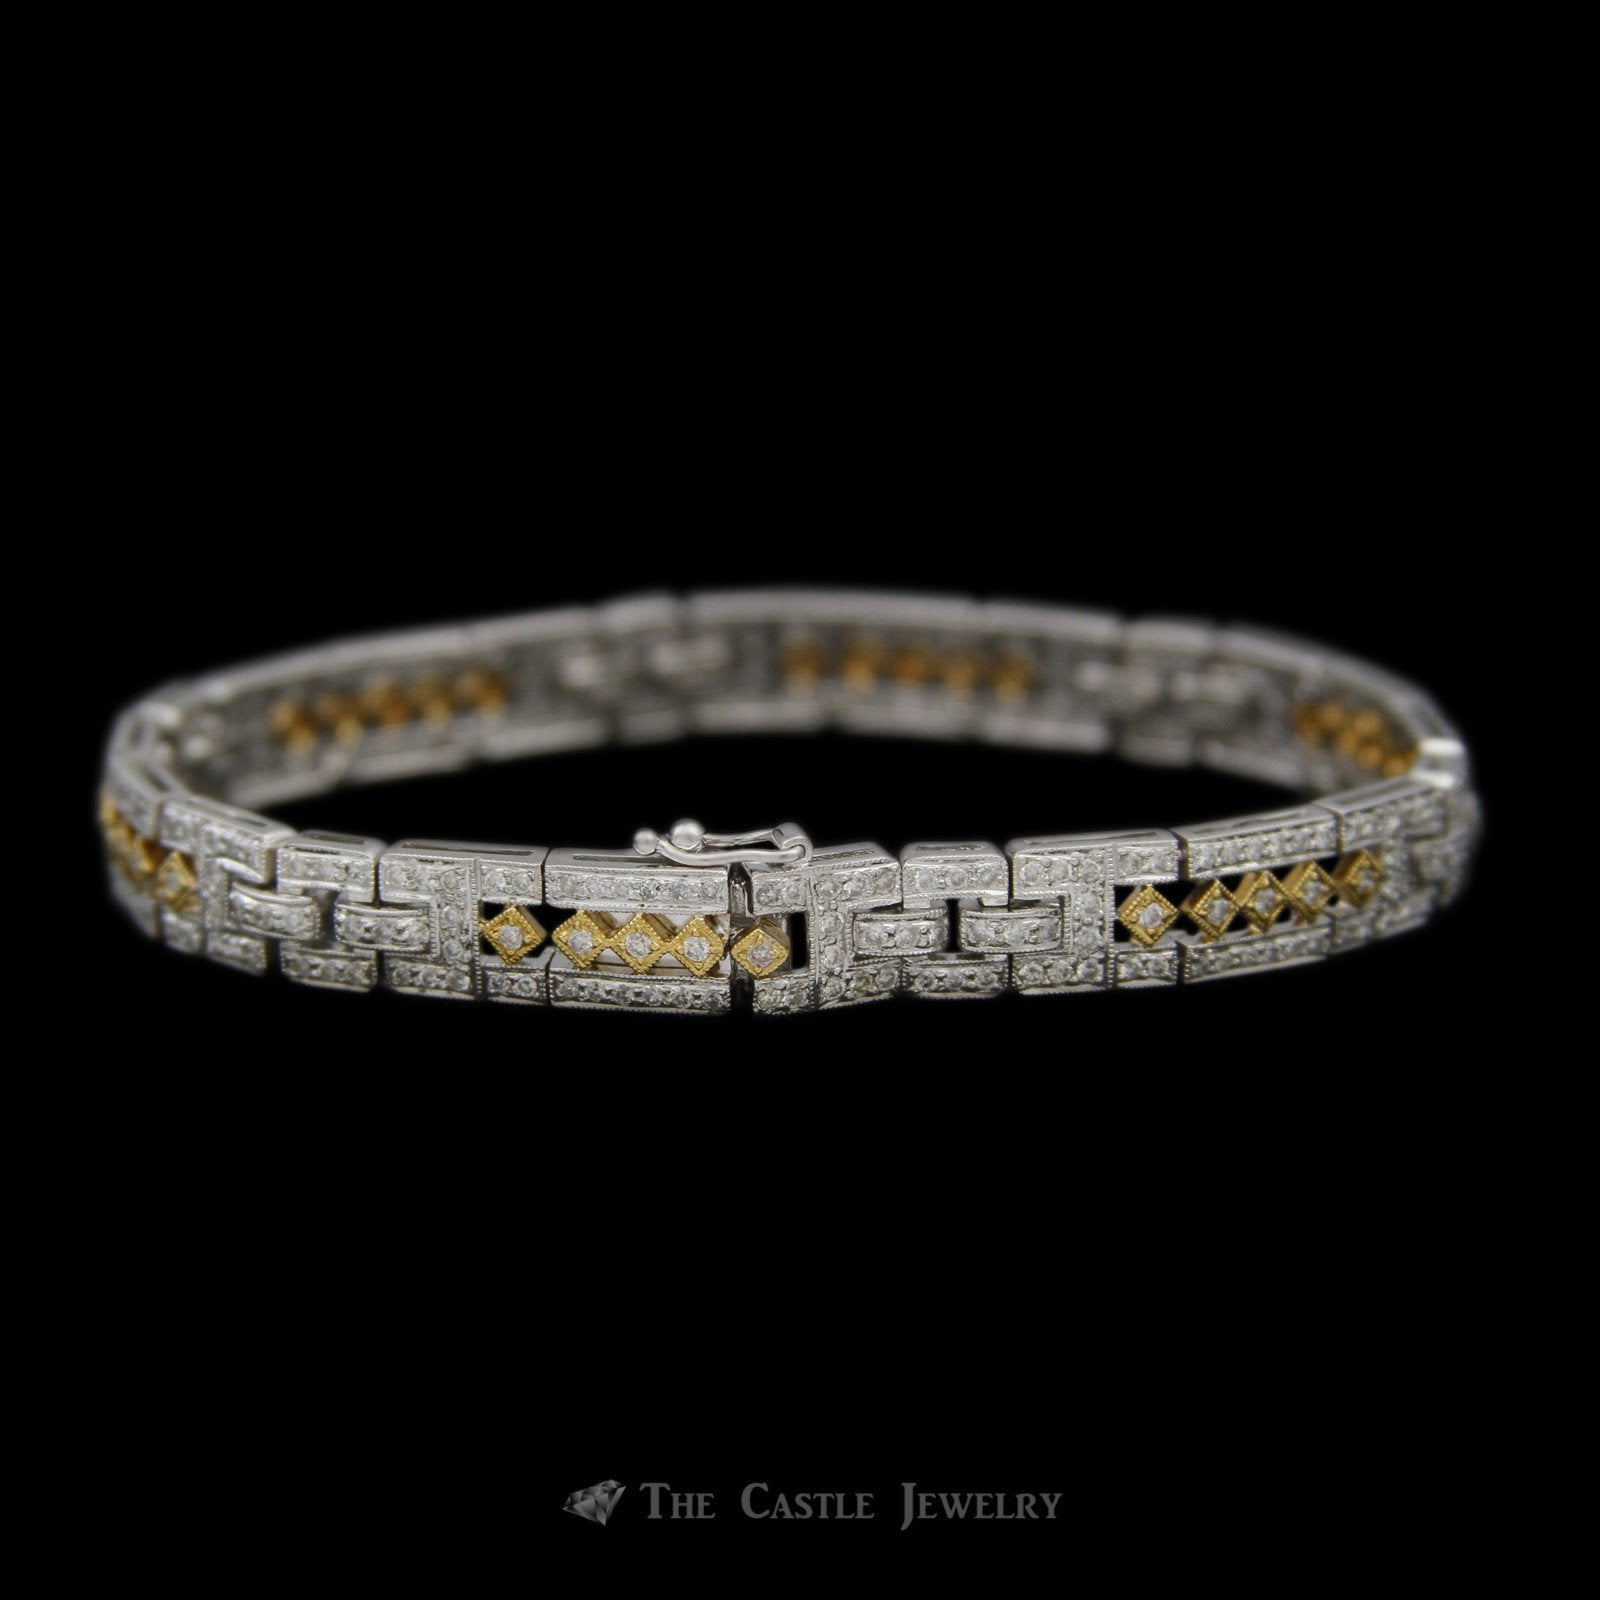 Open Link Design 2.50cttw Diamond Bracelet in 18K White Gold w/ Yellow Accents-2